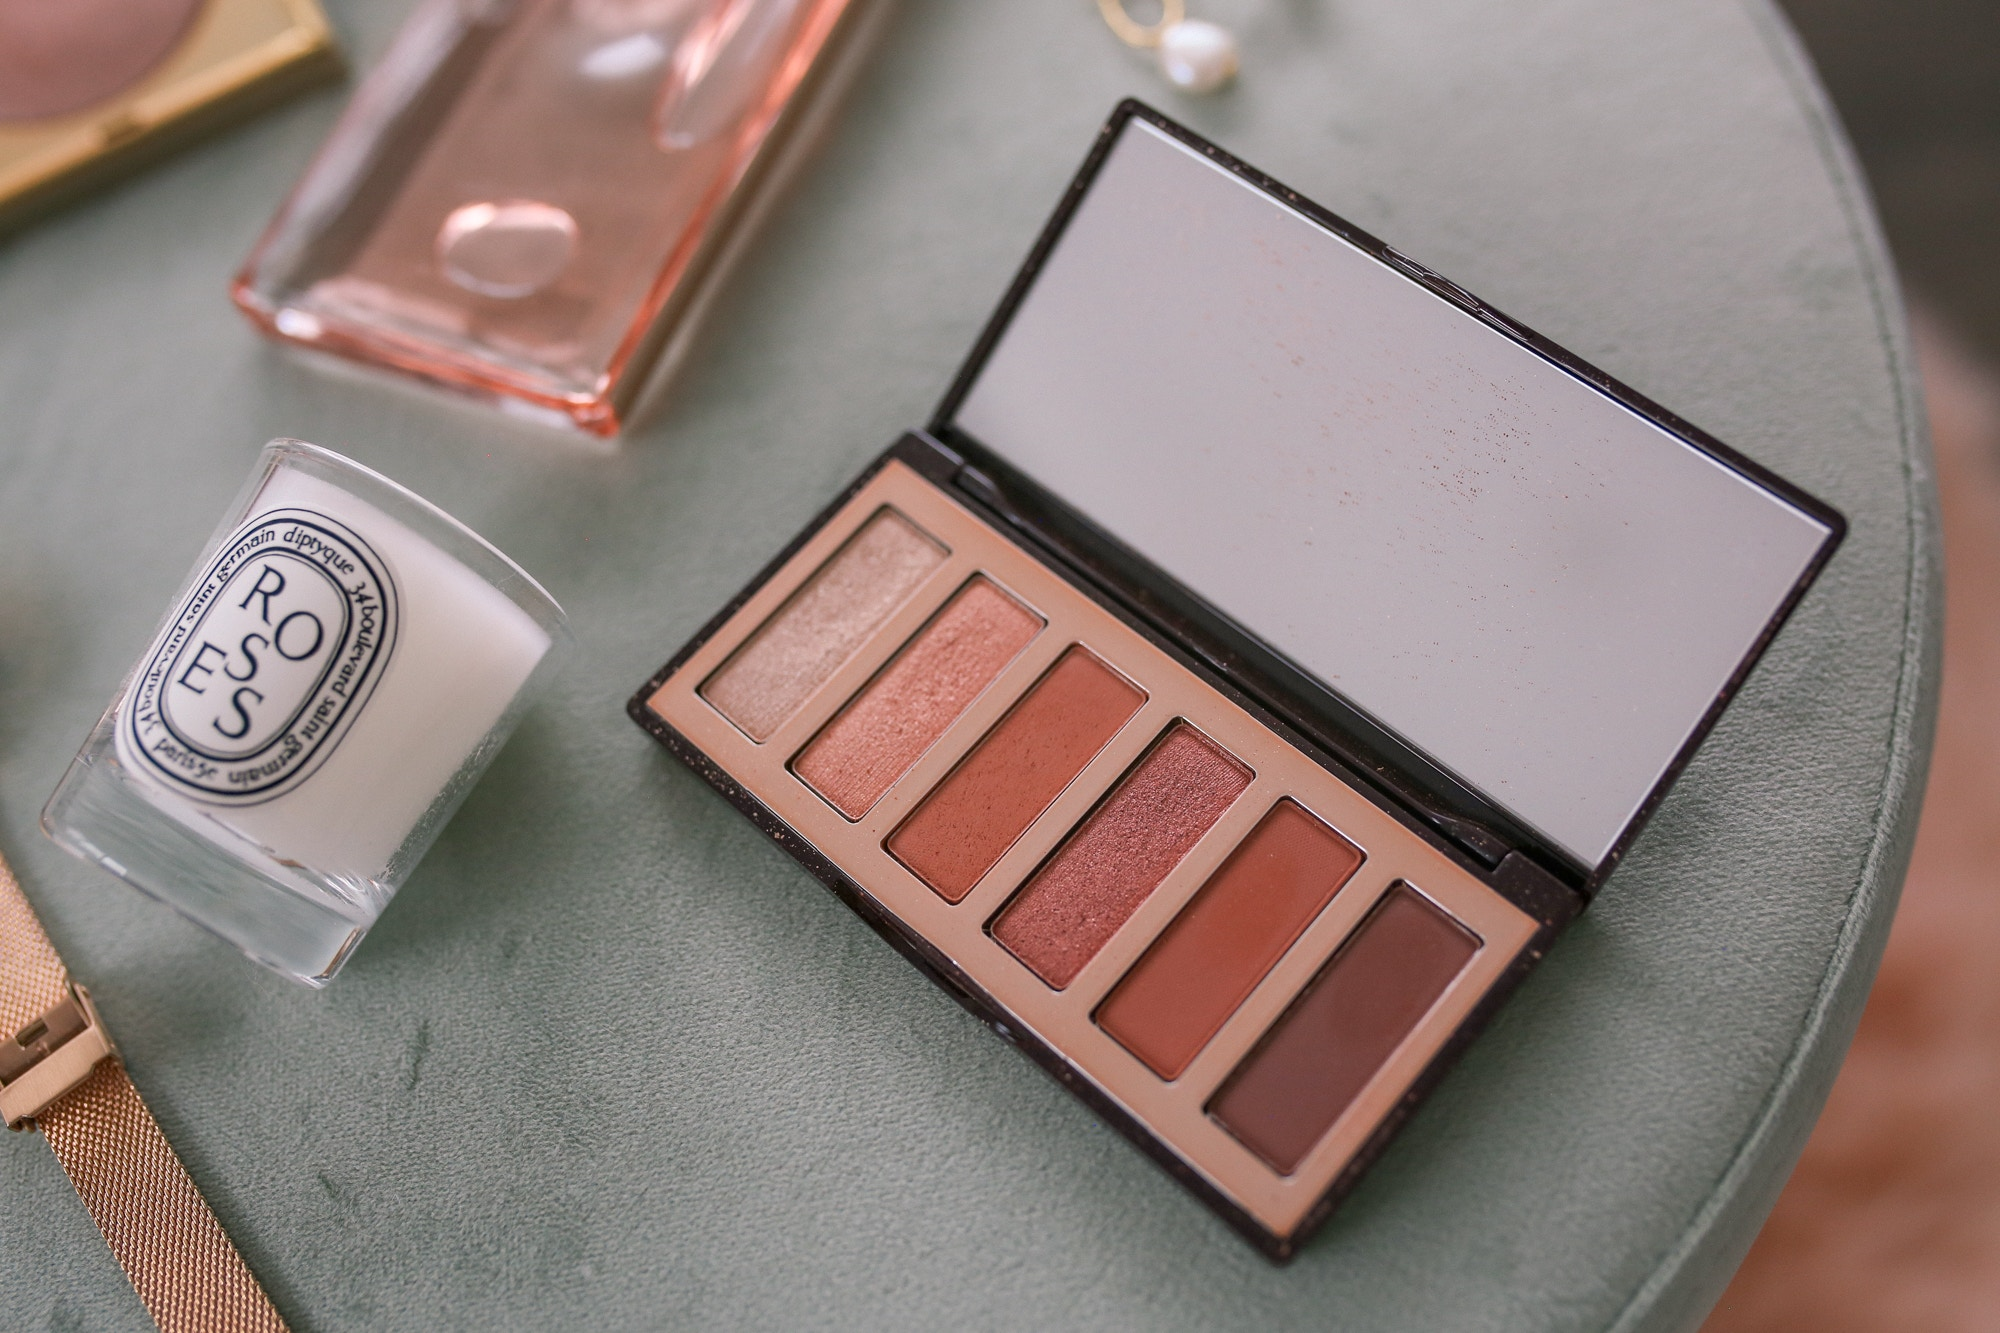 Charlotte Tilbury Darling Eyeshadow Palette Review: This eye palette contains 6 shades for two eye looks. The metallics are stunning, while the mattes are highly pigmented.